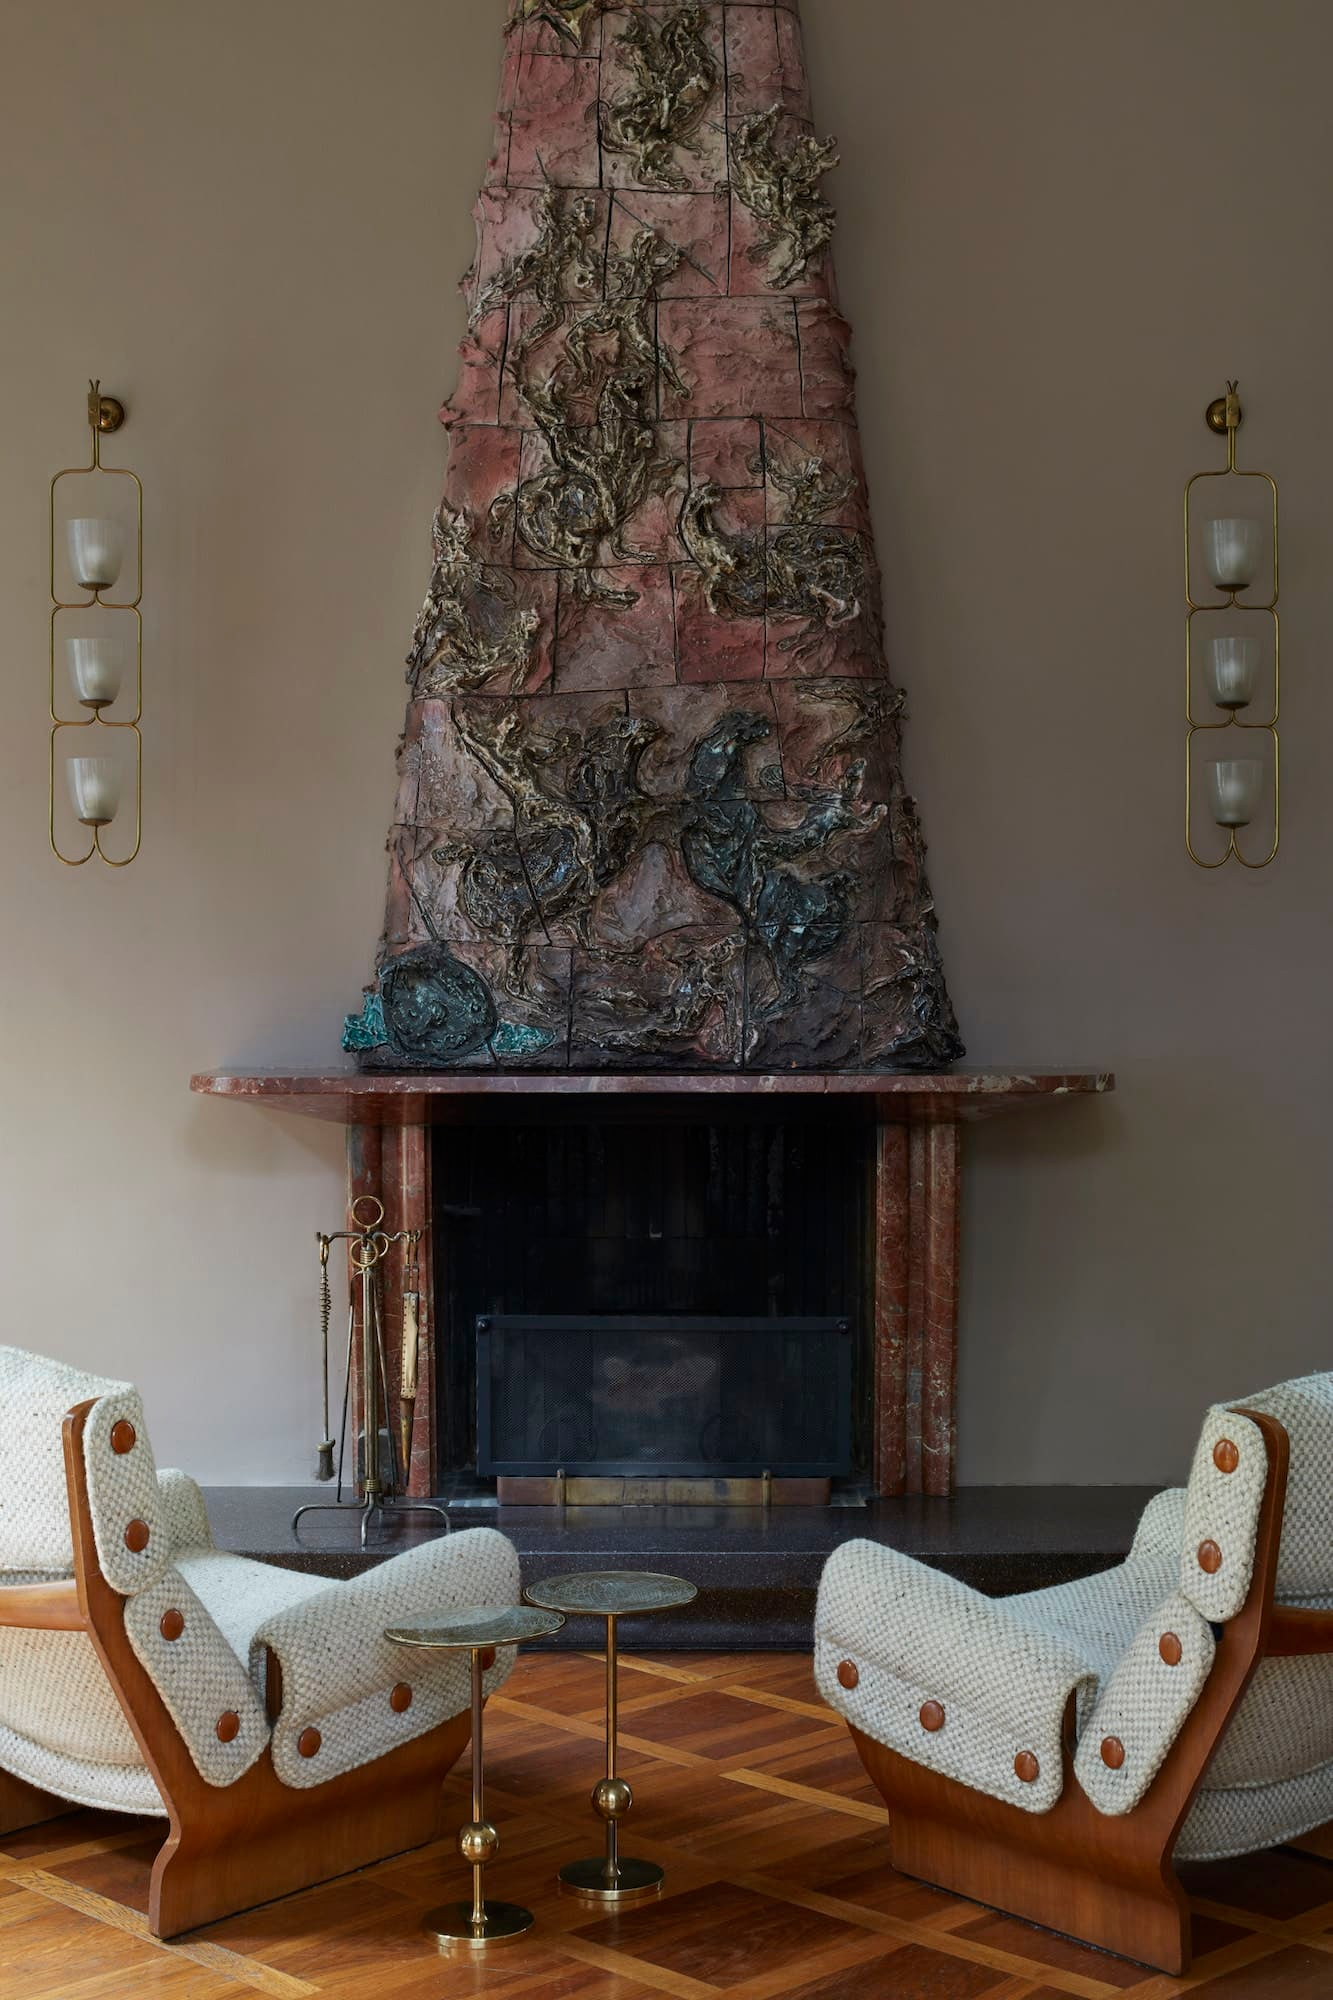 Lucio Fontana's fireplace in the living room of Villa Borsani